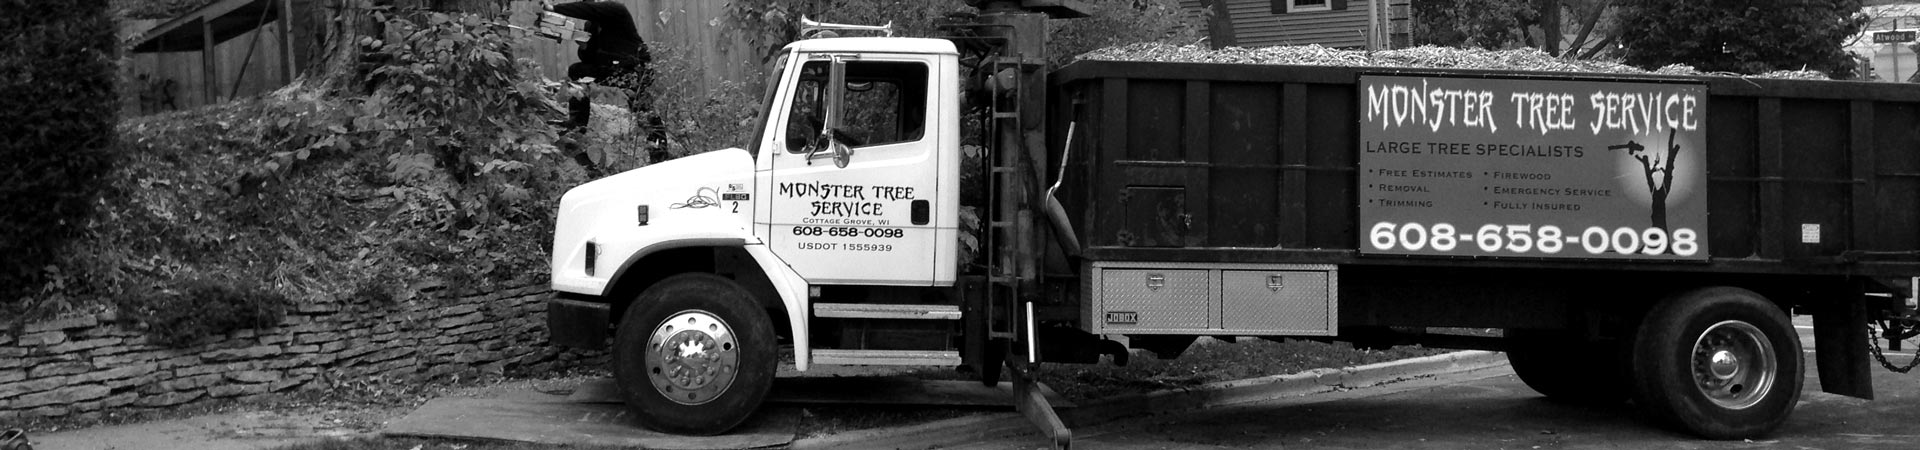 monster-tree-service-5-bw